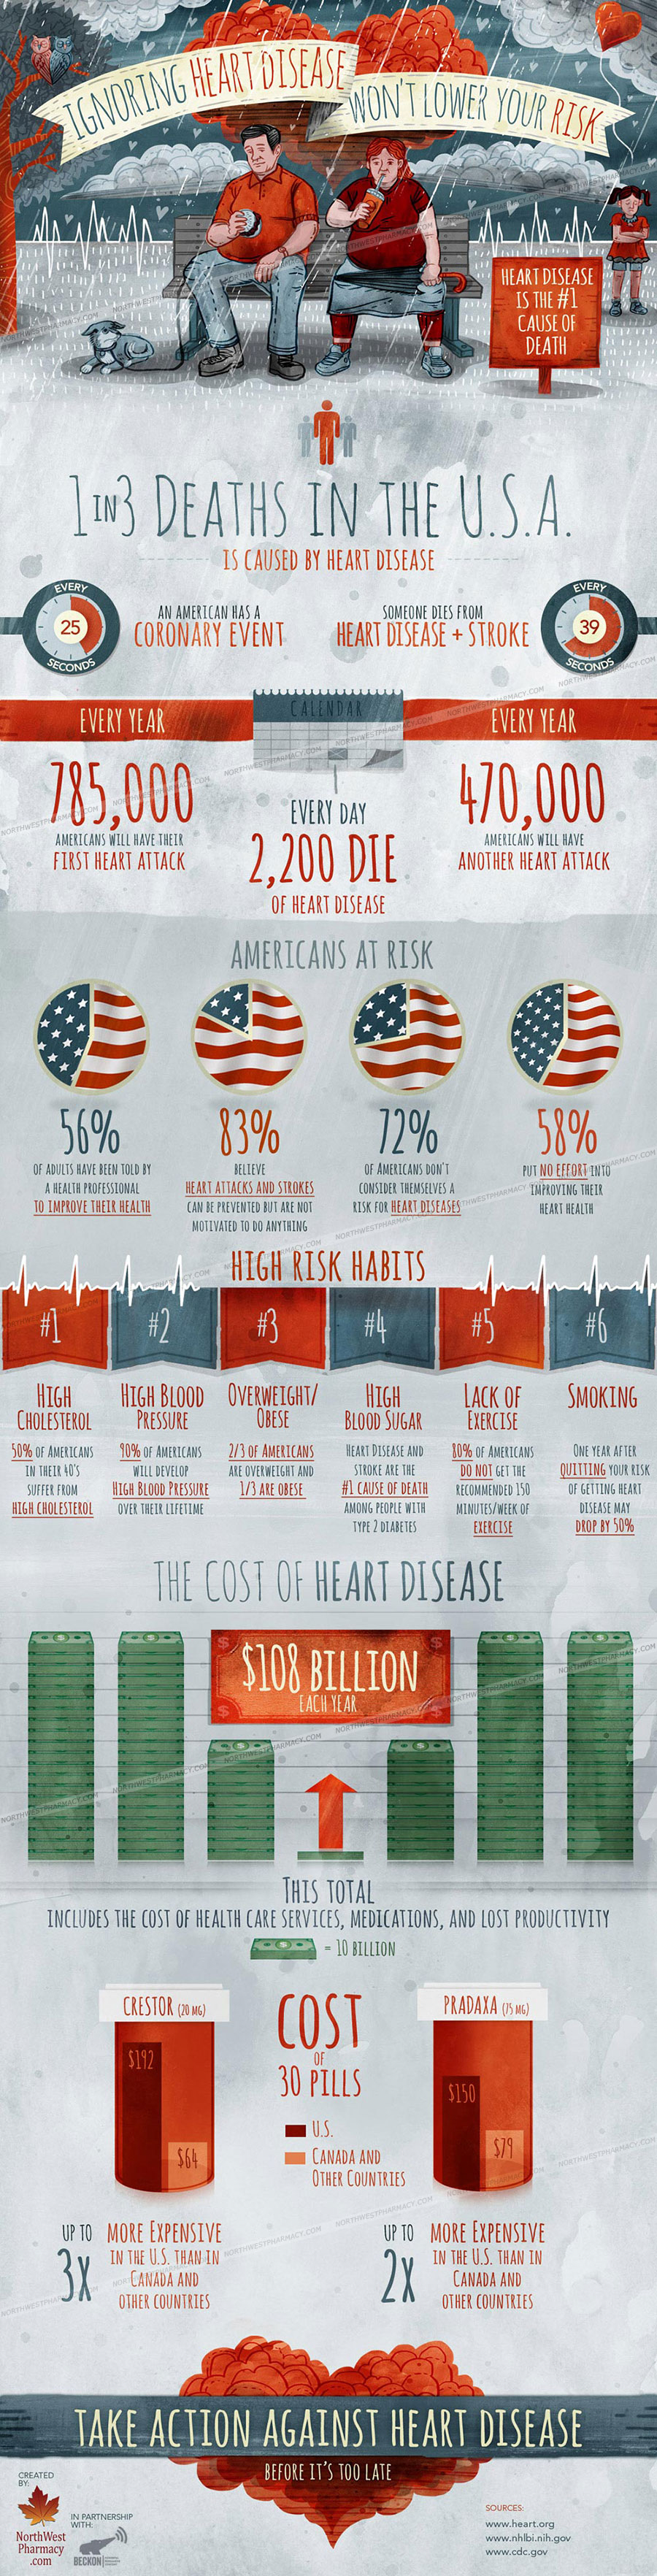 Ignoring Heart Disease Won't Lower Your Risk